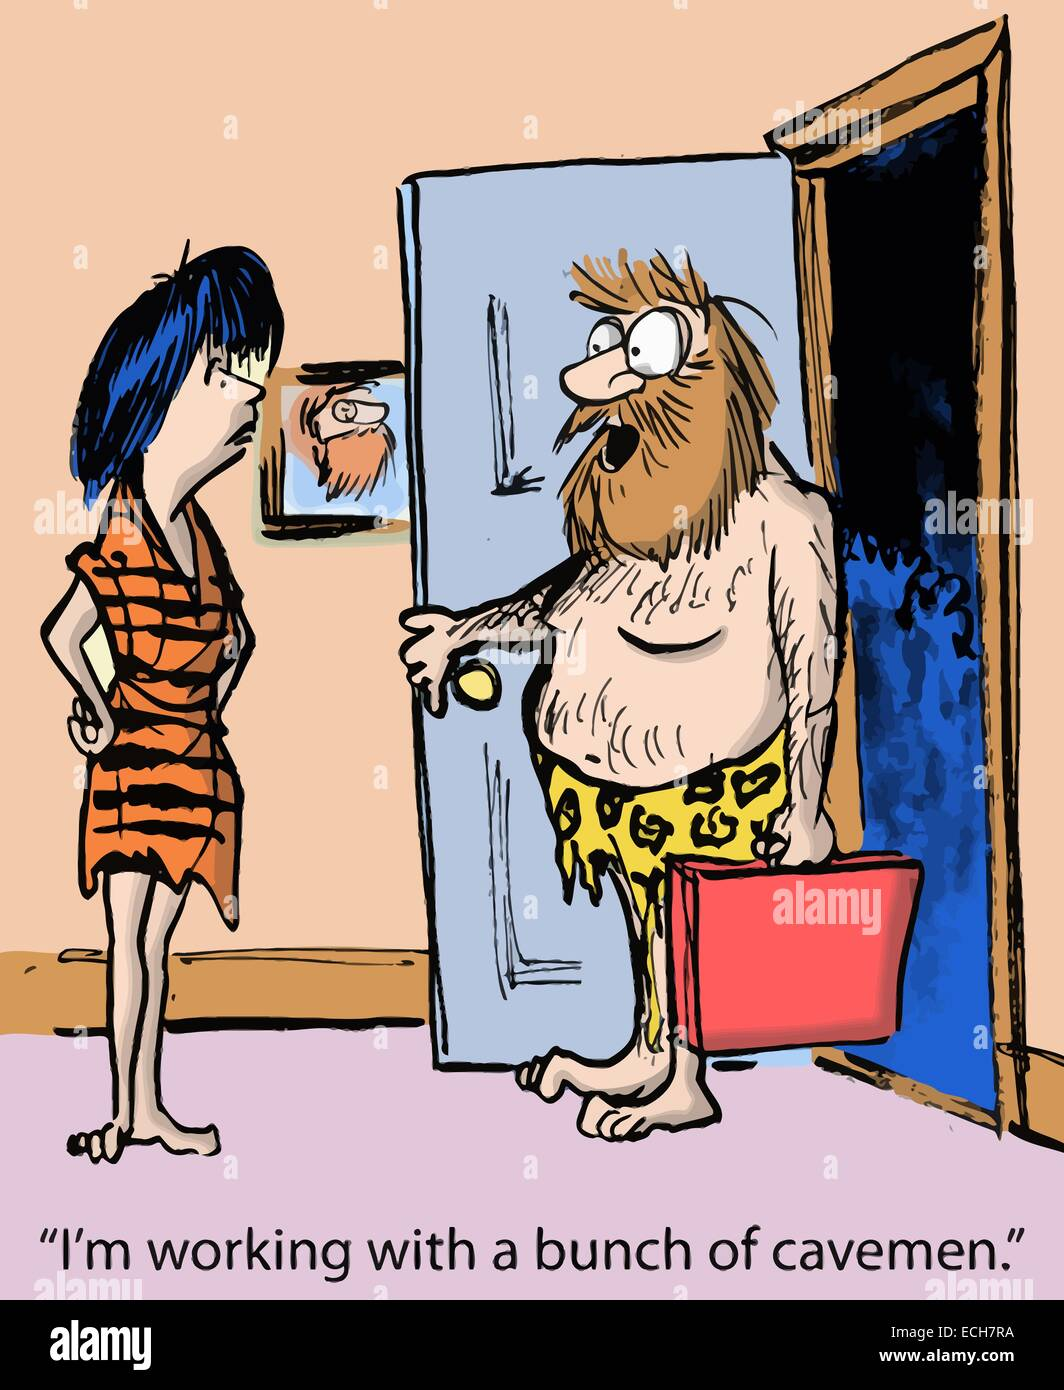 'I'm working with a bunch of cavemen.' - Stock Vector